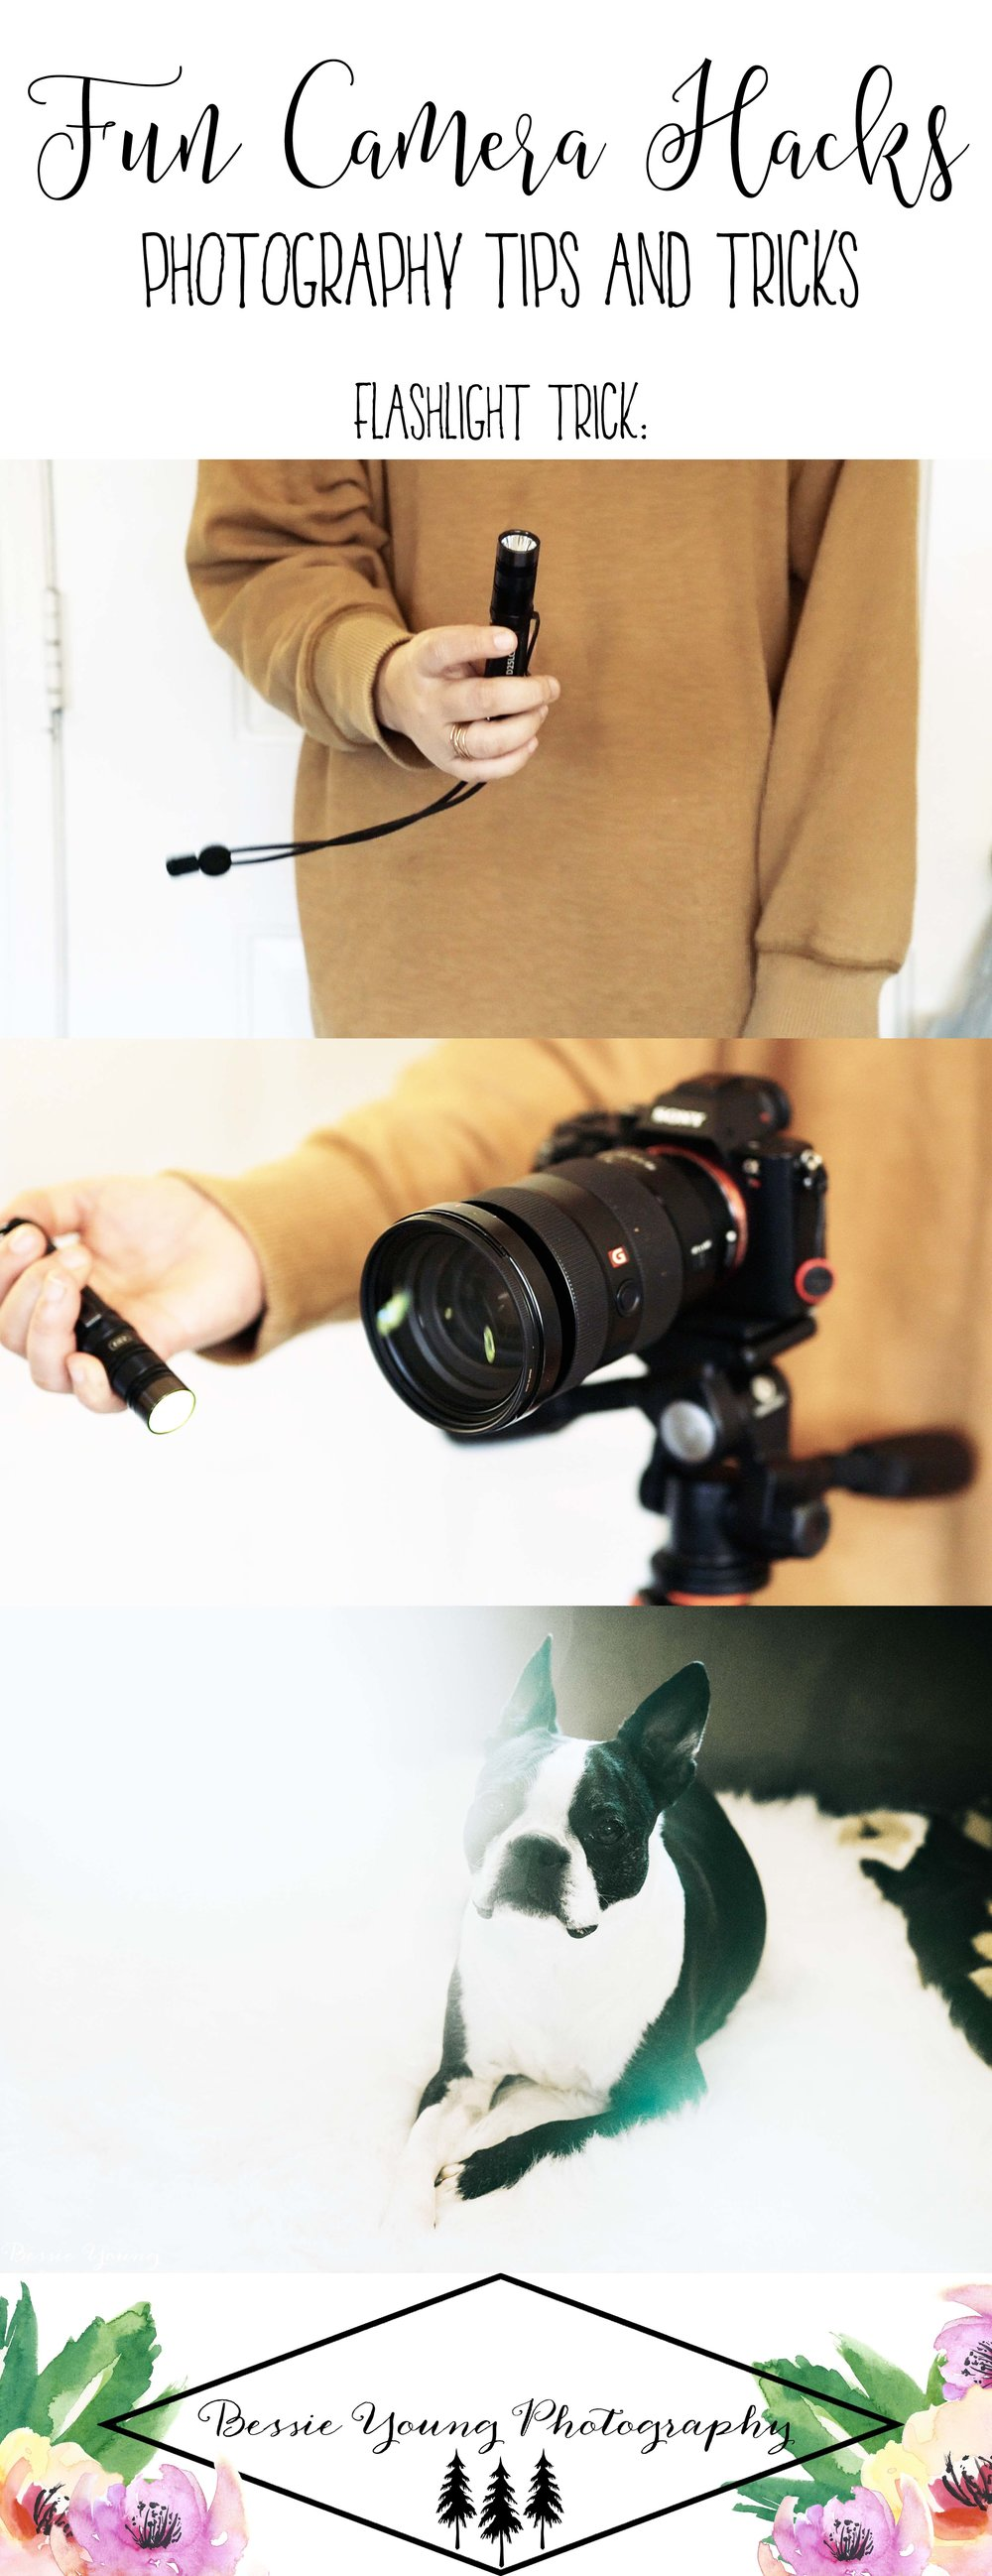 5 Fun Camera Hacks in Minutes - Photography Tips and Tricks by Bessie Young Photography